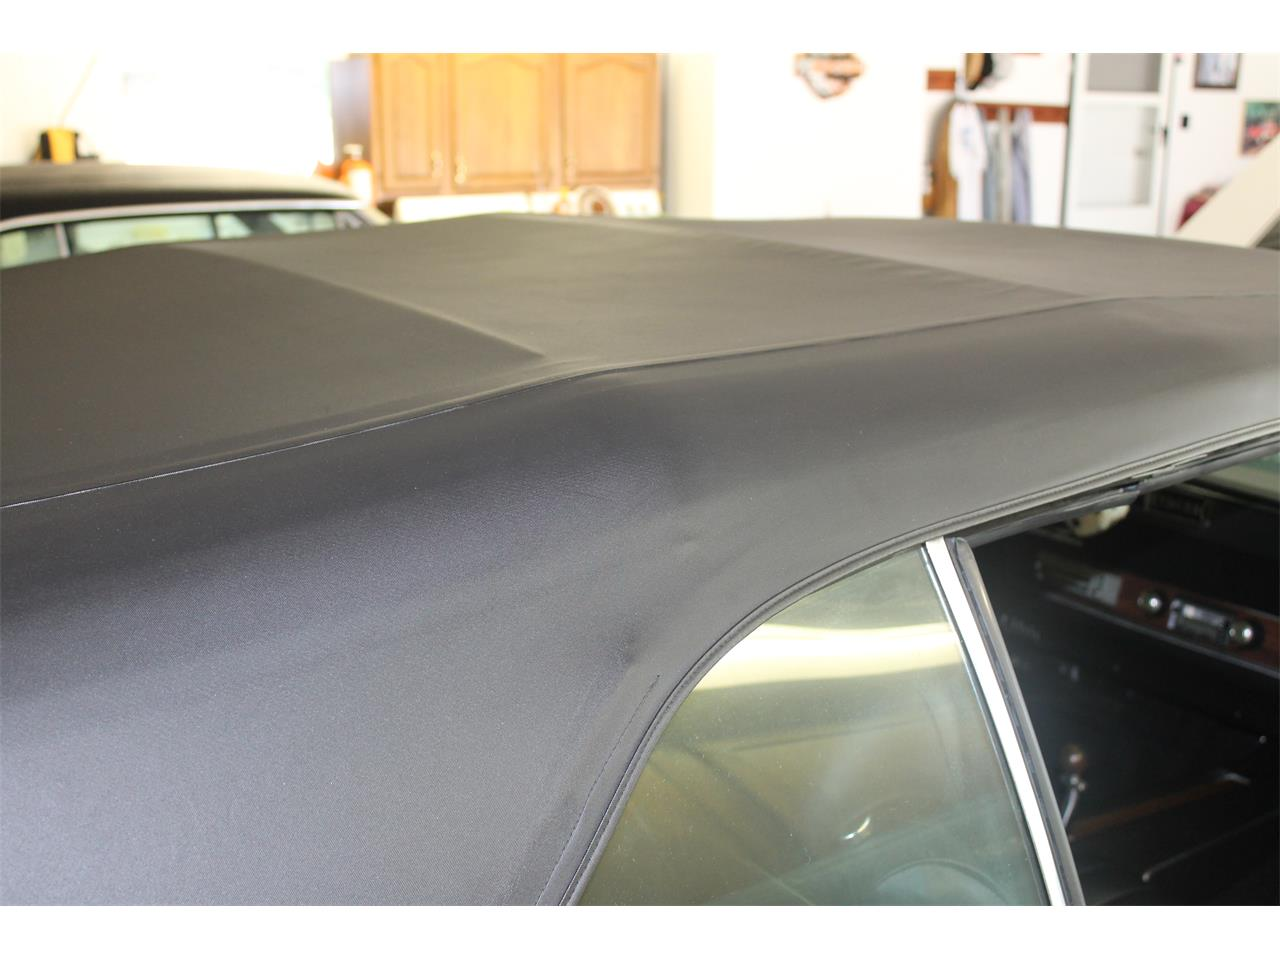 Large Picture of Classic 1972 Oldsmobile Cutlass Supreme located in Dimondale Michigan - $49,500.00 Offered by a Private Seller - MXYX